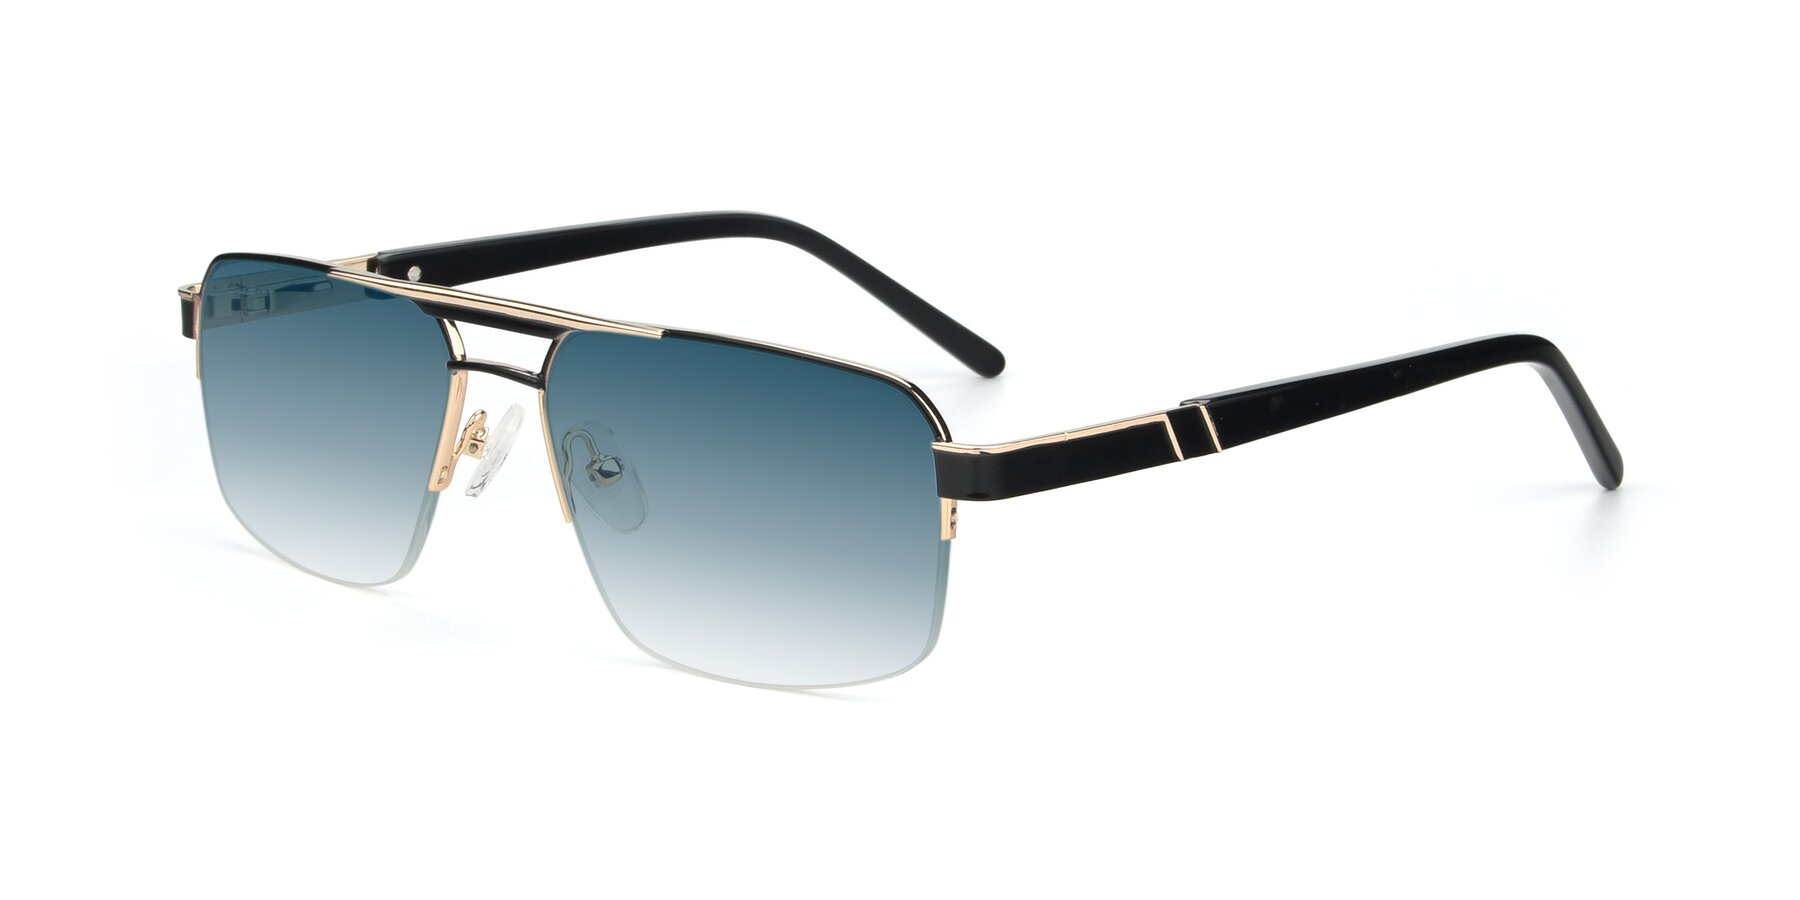 Angle of 19004 in Black-Gold with Blue Gradient Lenses